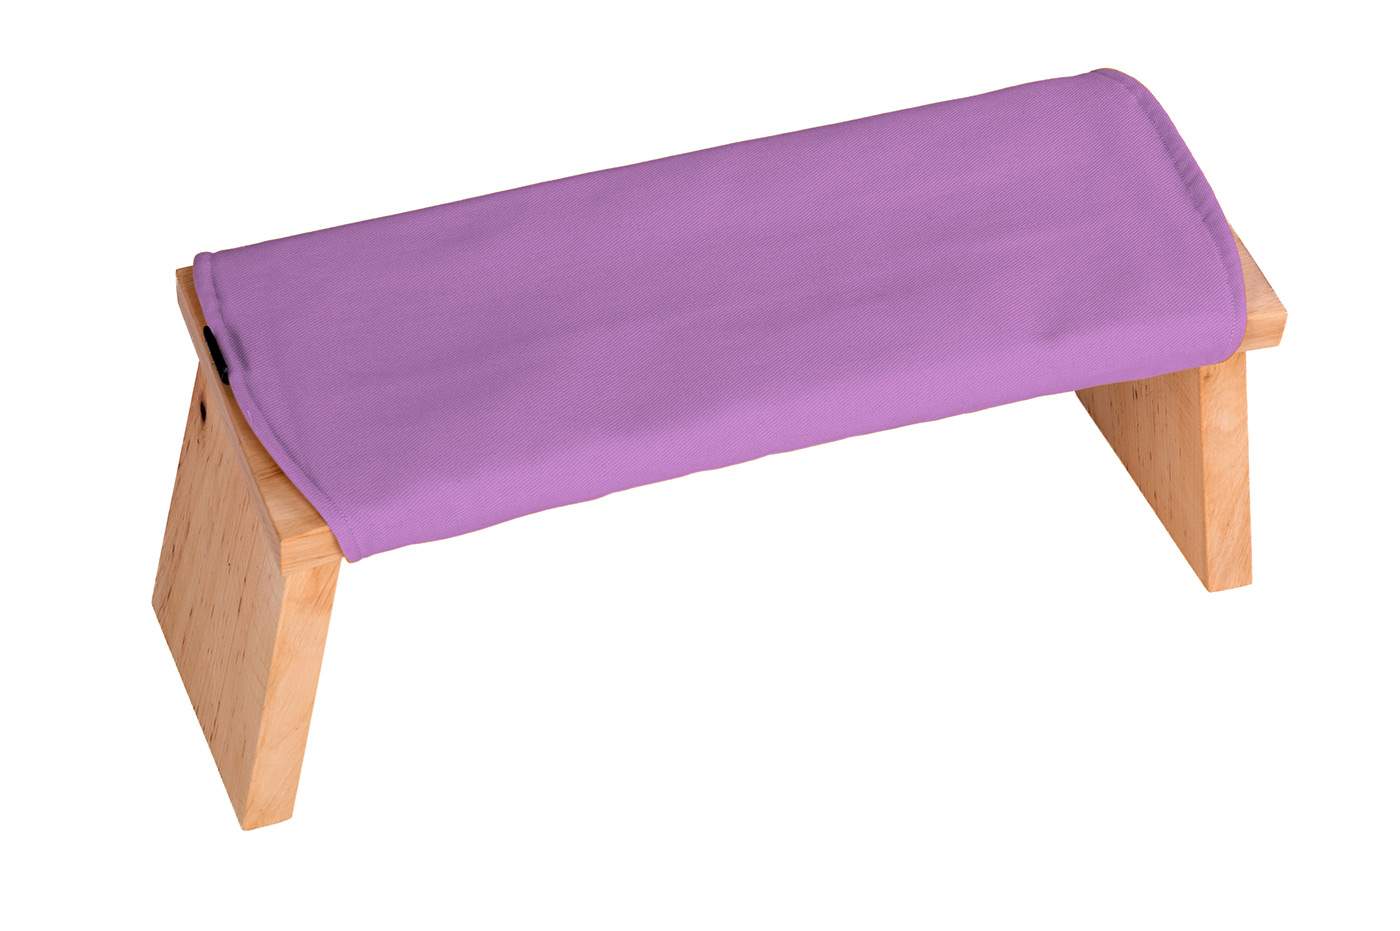 Seat cushion for meditation stool